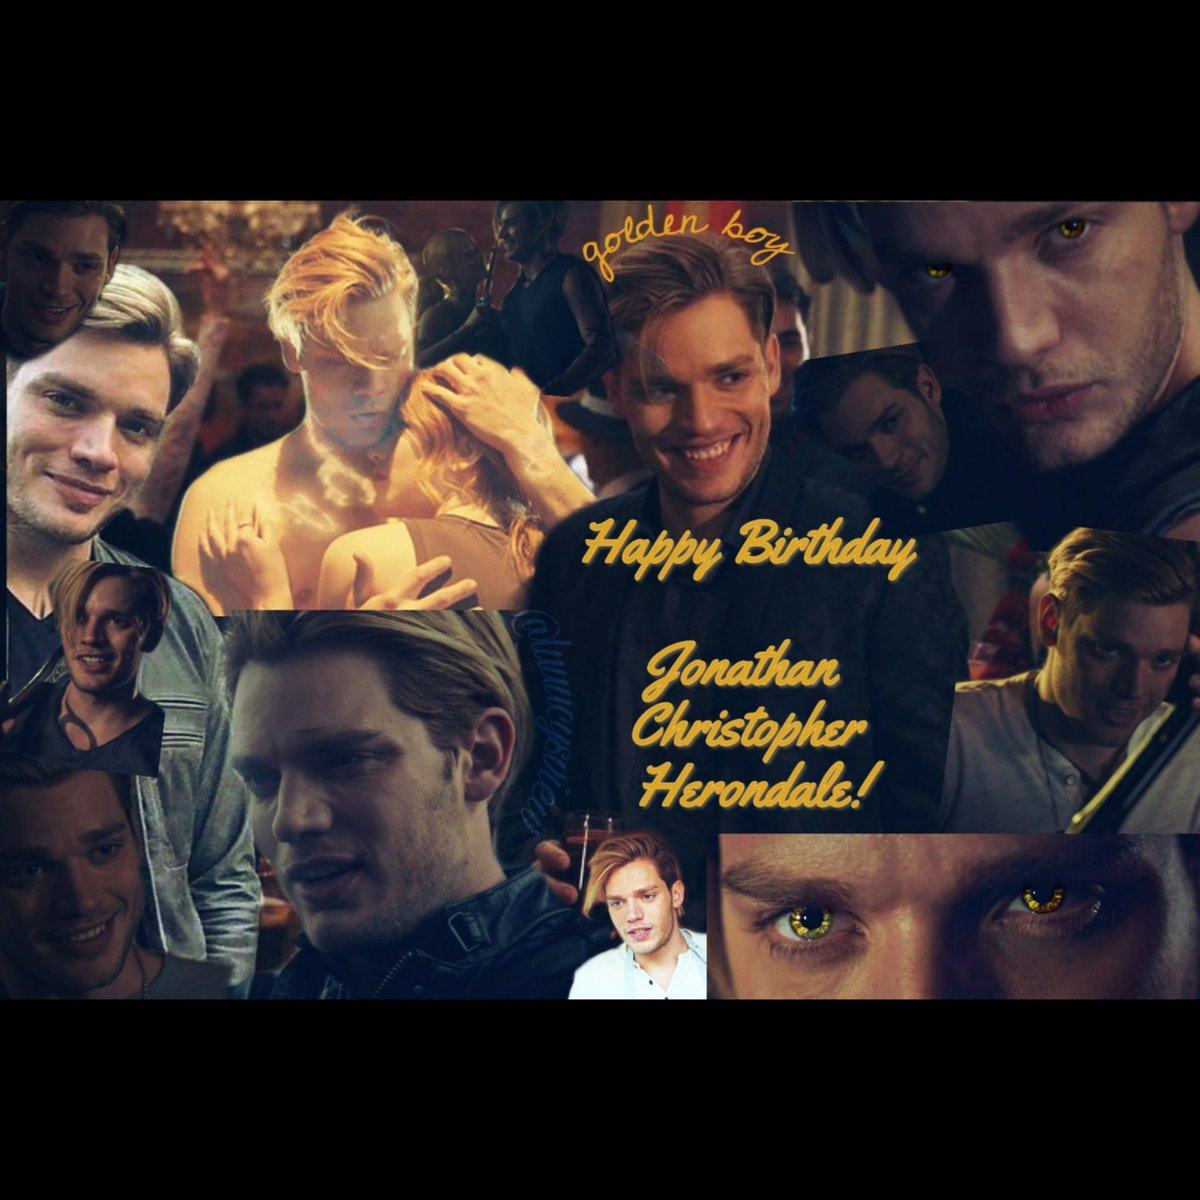 Happy Birthday to the golden boy Jonathan Christopher Herondale  Portrayed by #DominicSherwood  #HappyBirthdayJonathanChristopherHerondale #HappyBirthdayJace  #Shadowhunters #ShadowhuntersLegacy<br>http://pic.twitter.com/SIjxggkKzR